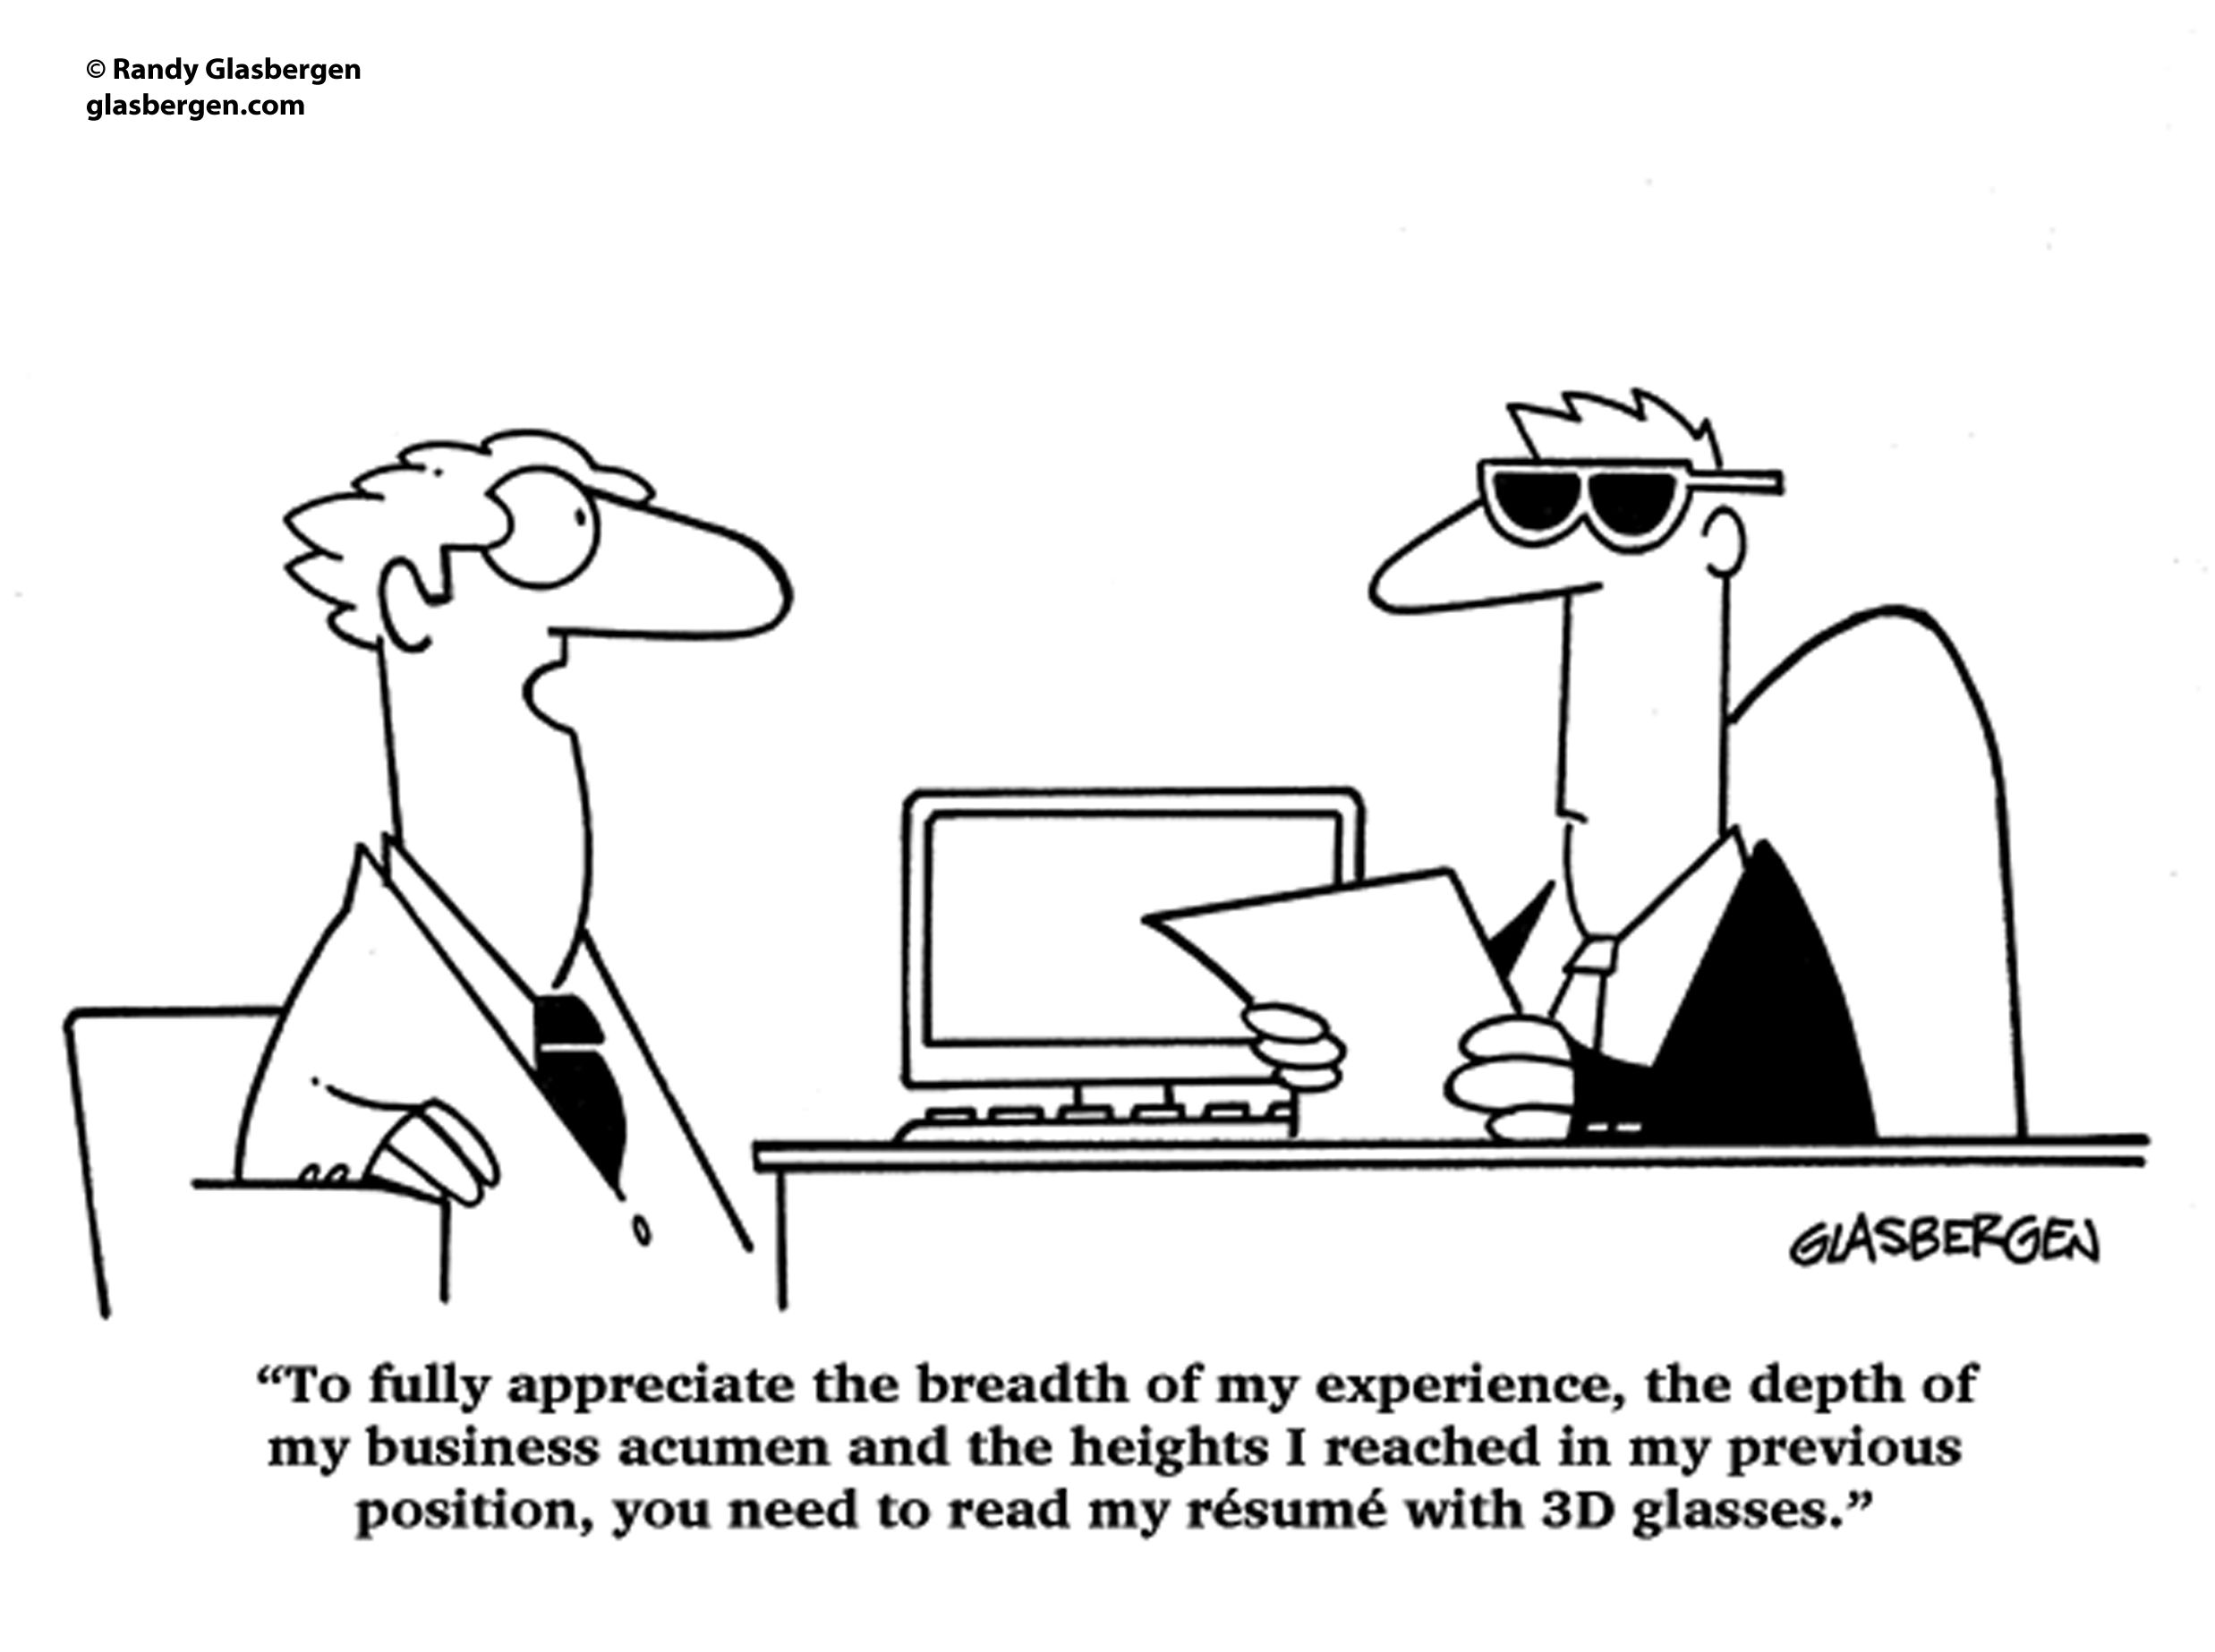 interviewing job candidates medical office humor interviewing job candidates